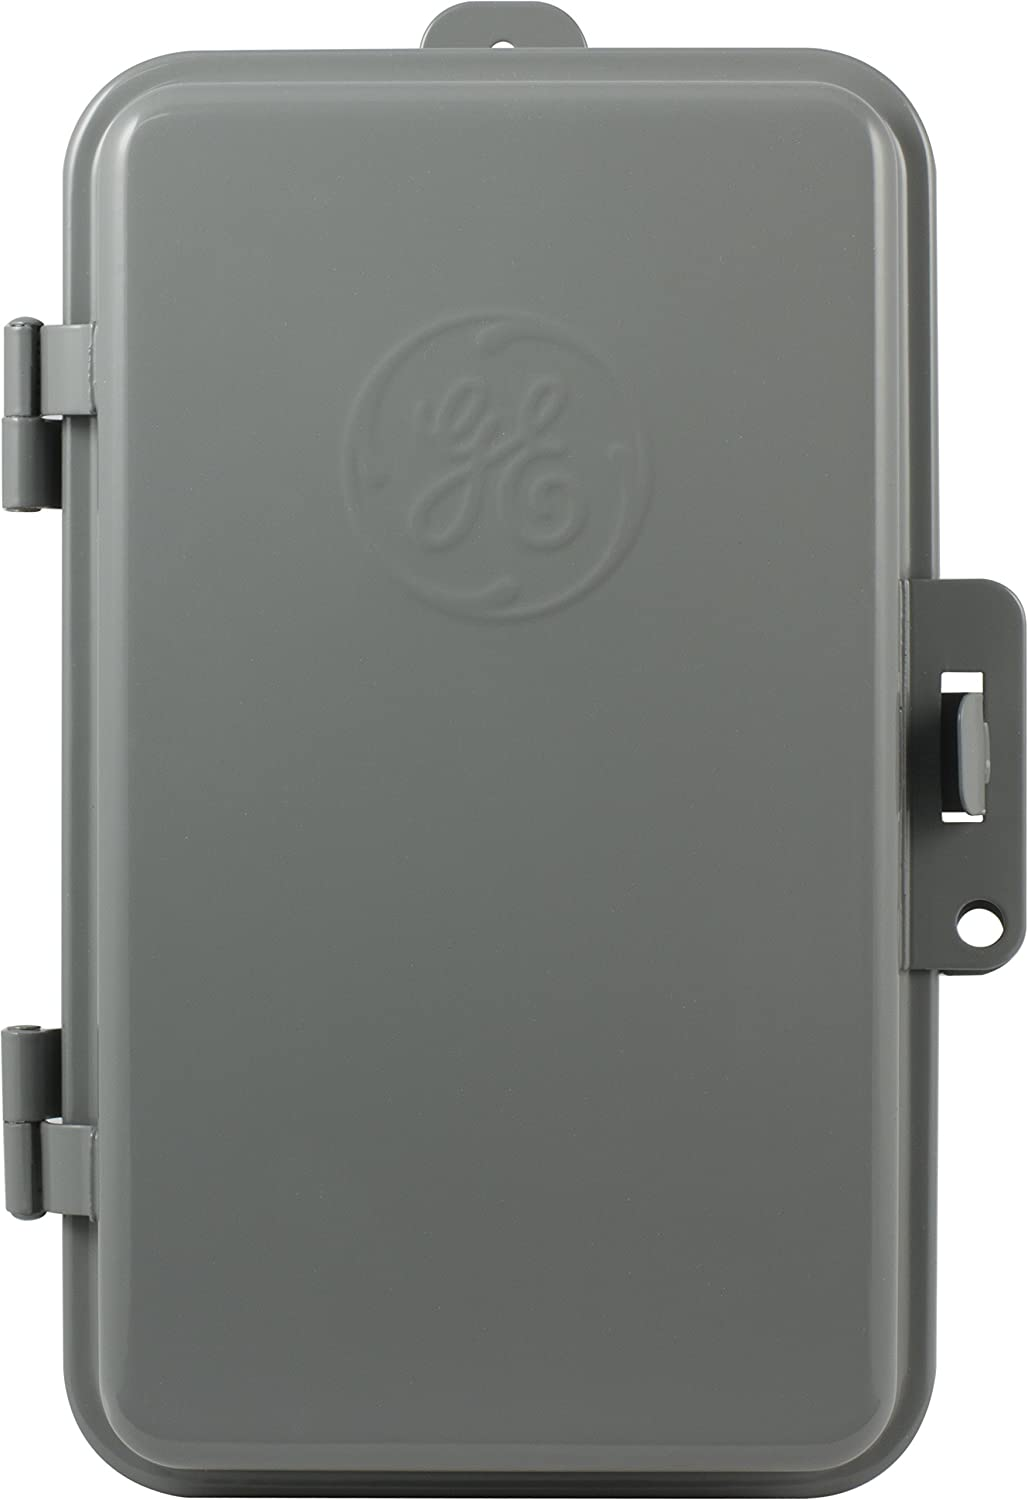 GE 24-Hour Indoor/Outdoor Mechanical Time Switch, 40 Amp 240 VAC 5HP Box Timer, Double Pole Single Throw, NEMA 3-Rated Metal Tamper Resistant Enclosure, for Fans, Pumps, Air, and Heating, 15164, Beige